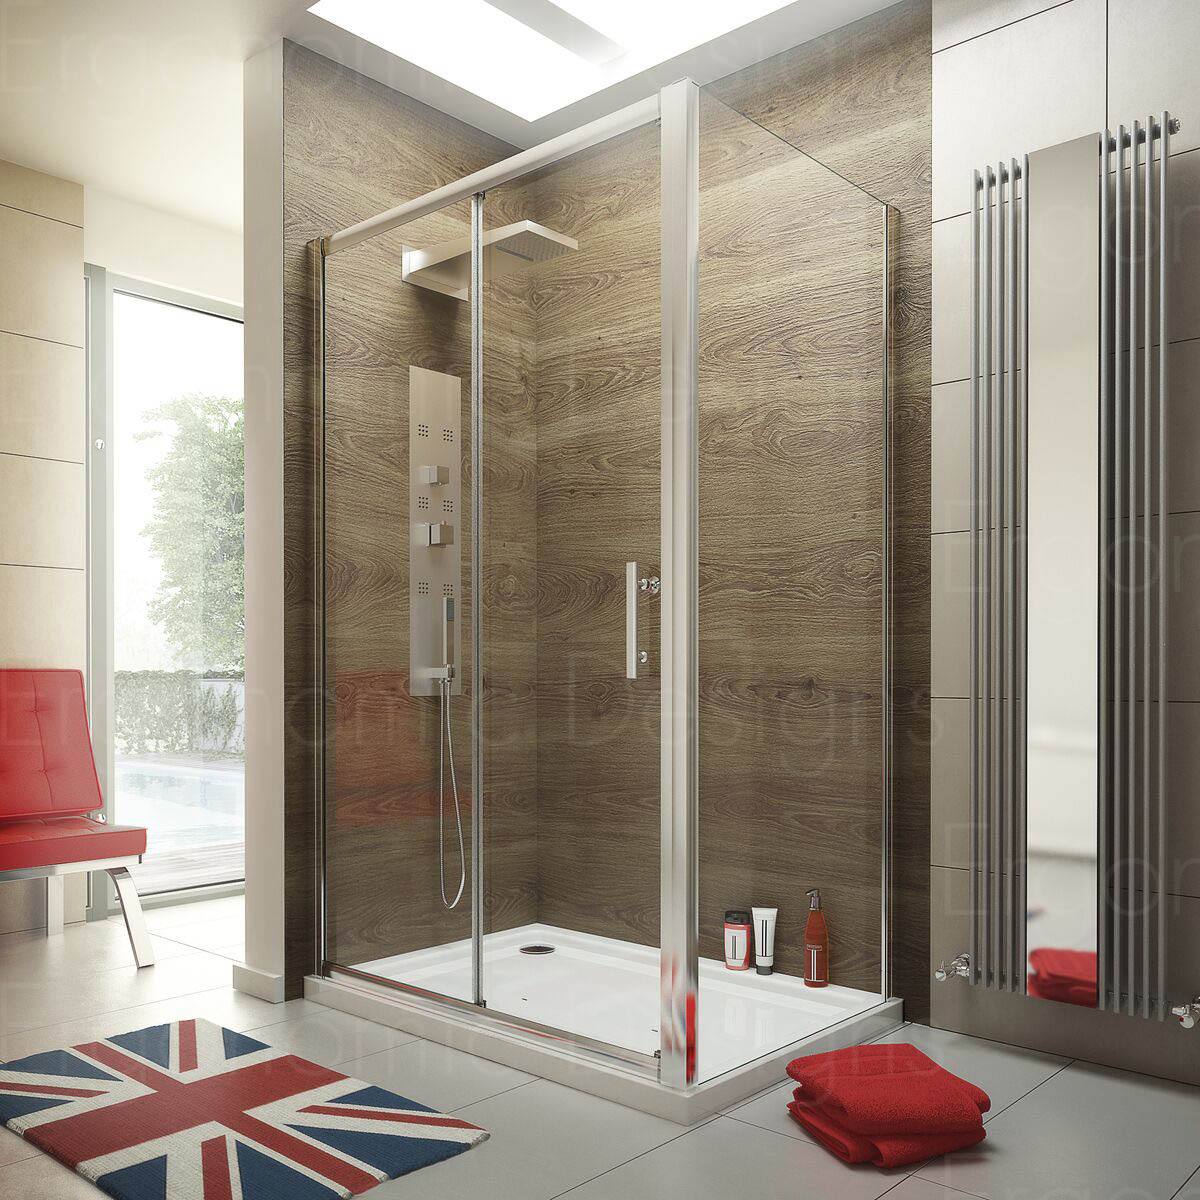 1200 x 760 Sliding Door Shower Enclosure Glass Cubicle with Stone ...